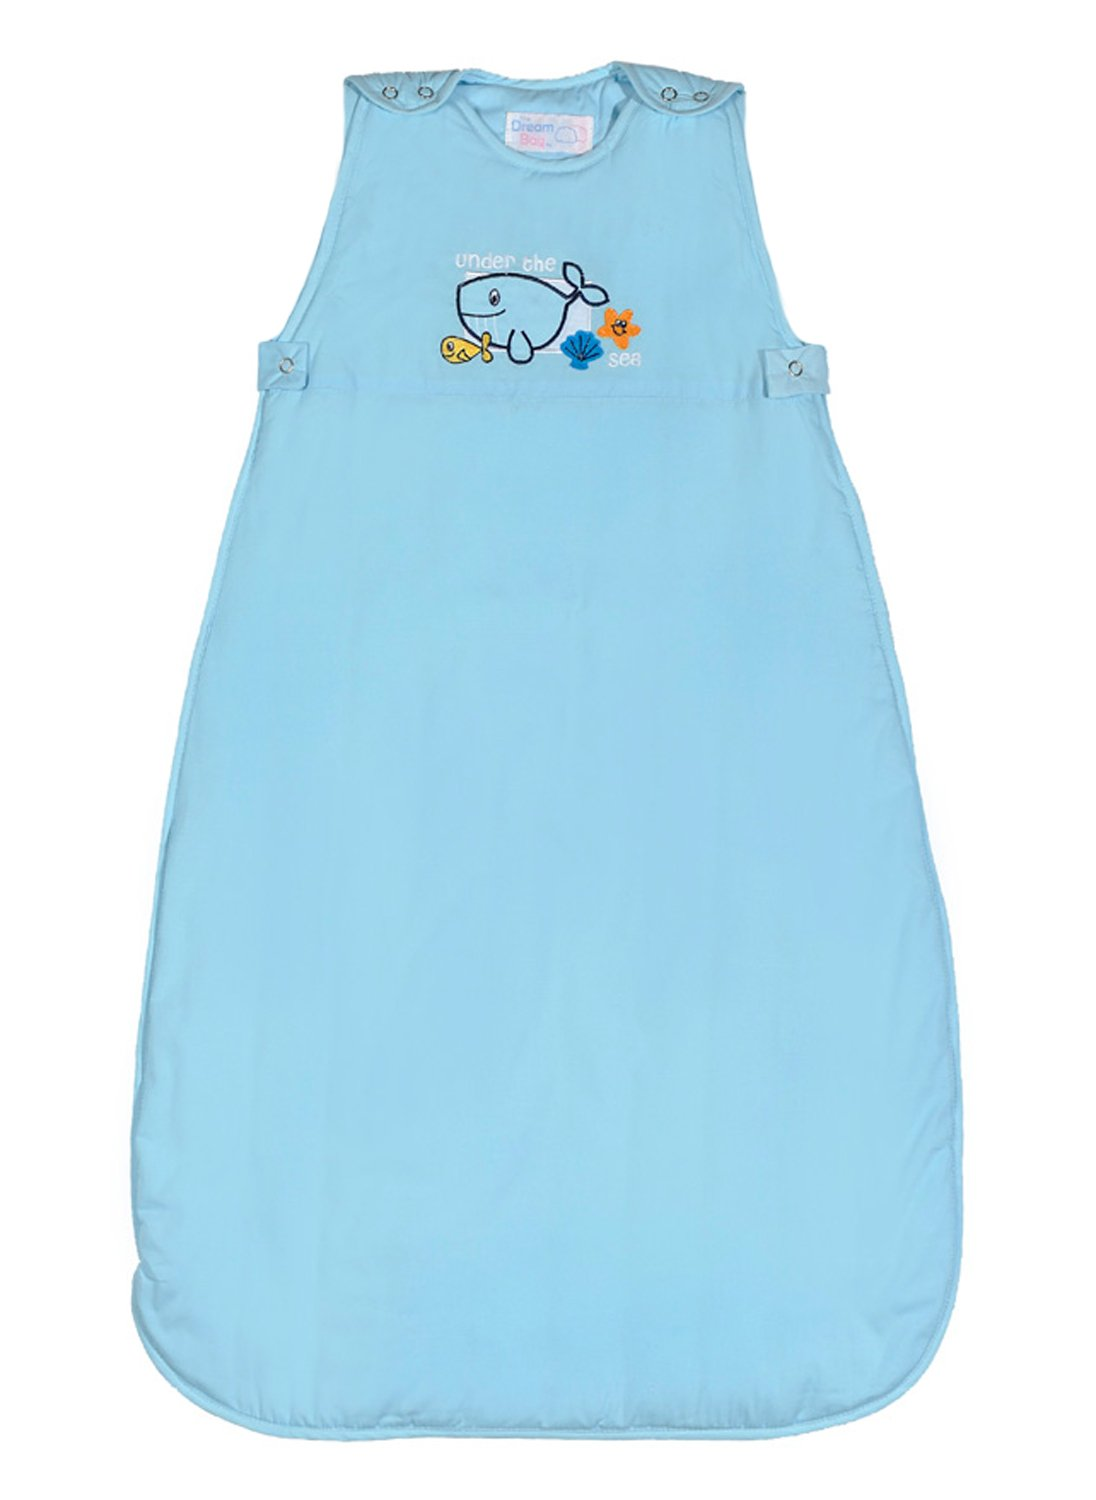 The Dream Bag Baby Sleeping Bag Under The Sea 6-18 months 1.0 TOG - Blue by The Dream Bag   B001AE3ZZM